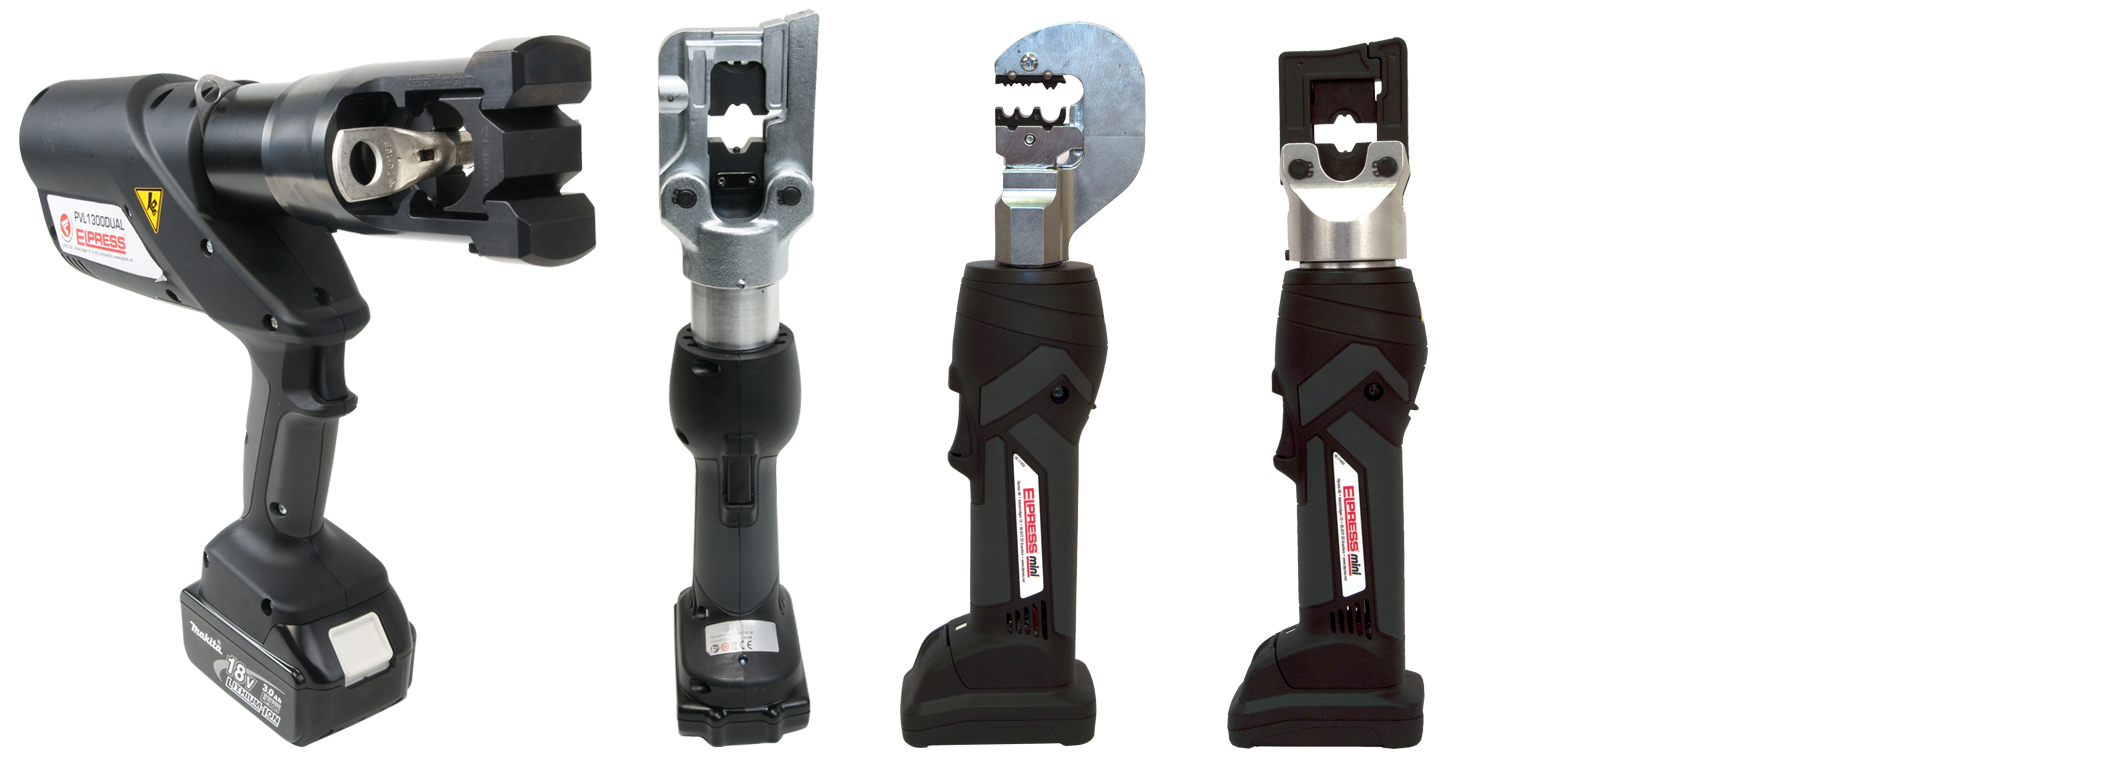 Elpress hydraulic crimping tools